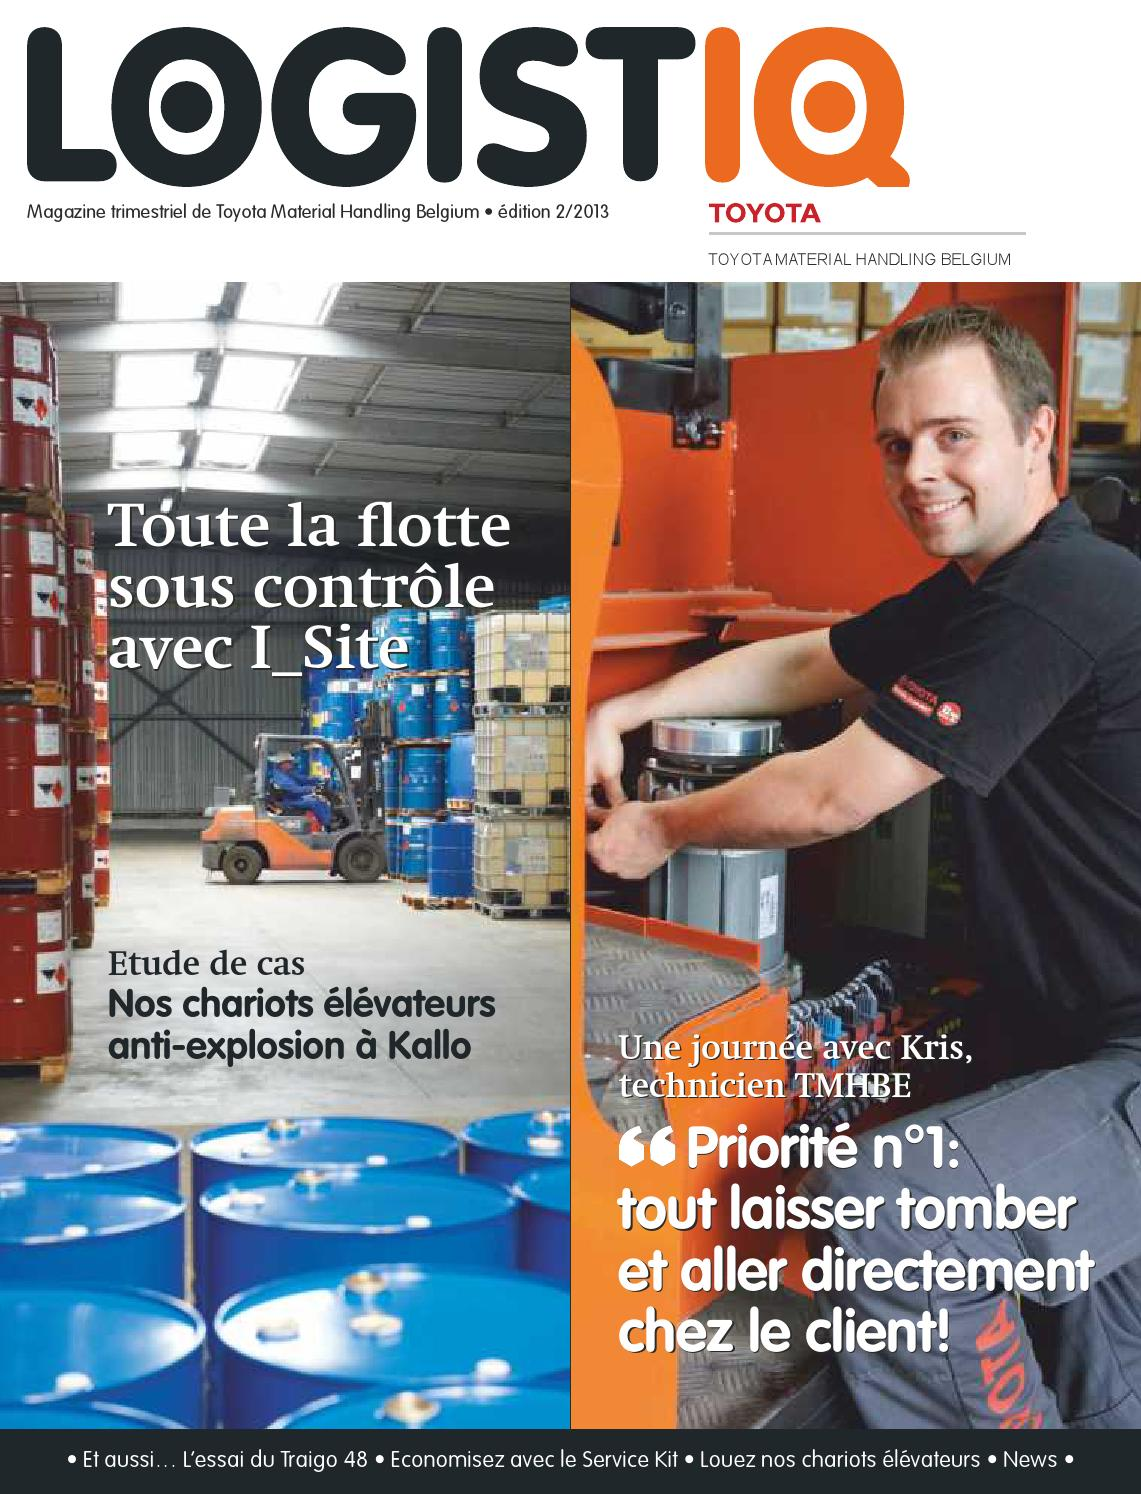 magazine d 39 entreprise toyota material handling belgium by thomas verheyen issuu. Black Bedroom Furniture Sets. Home Design Ideas